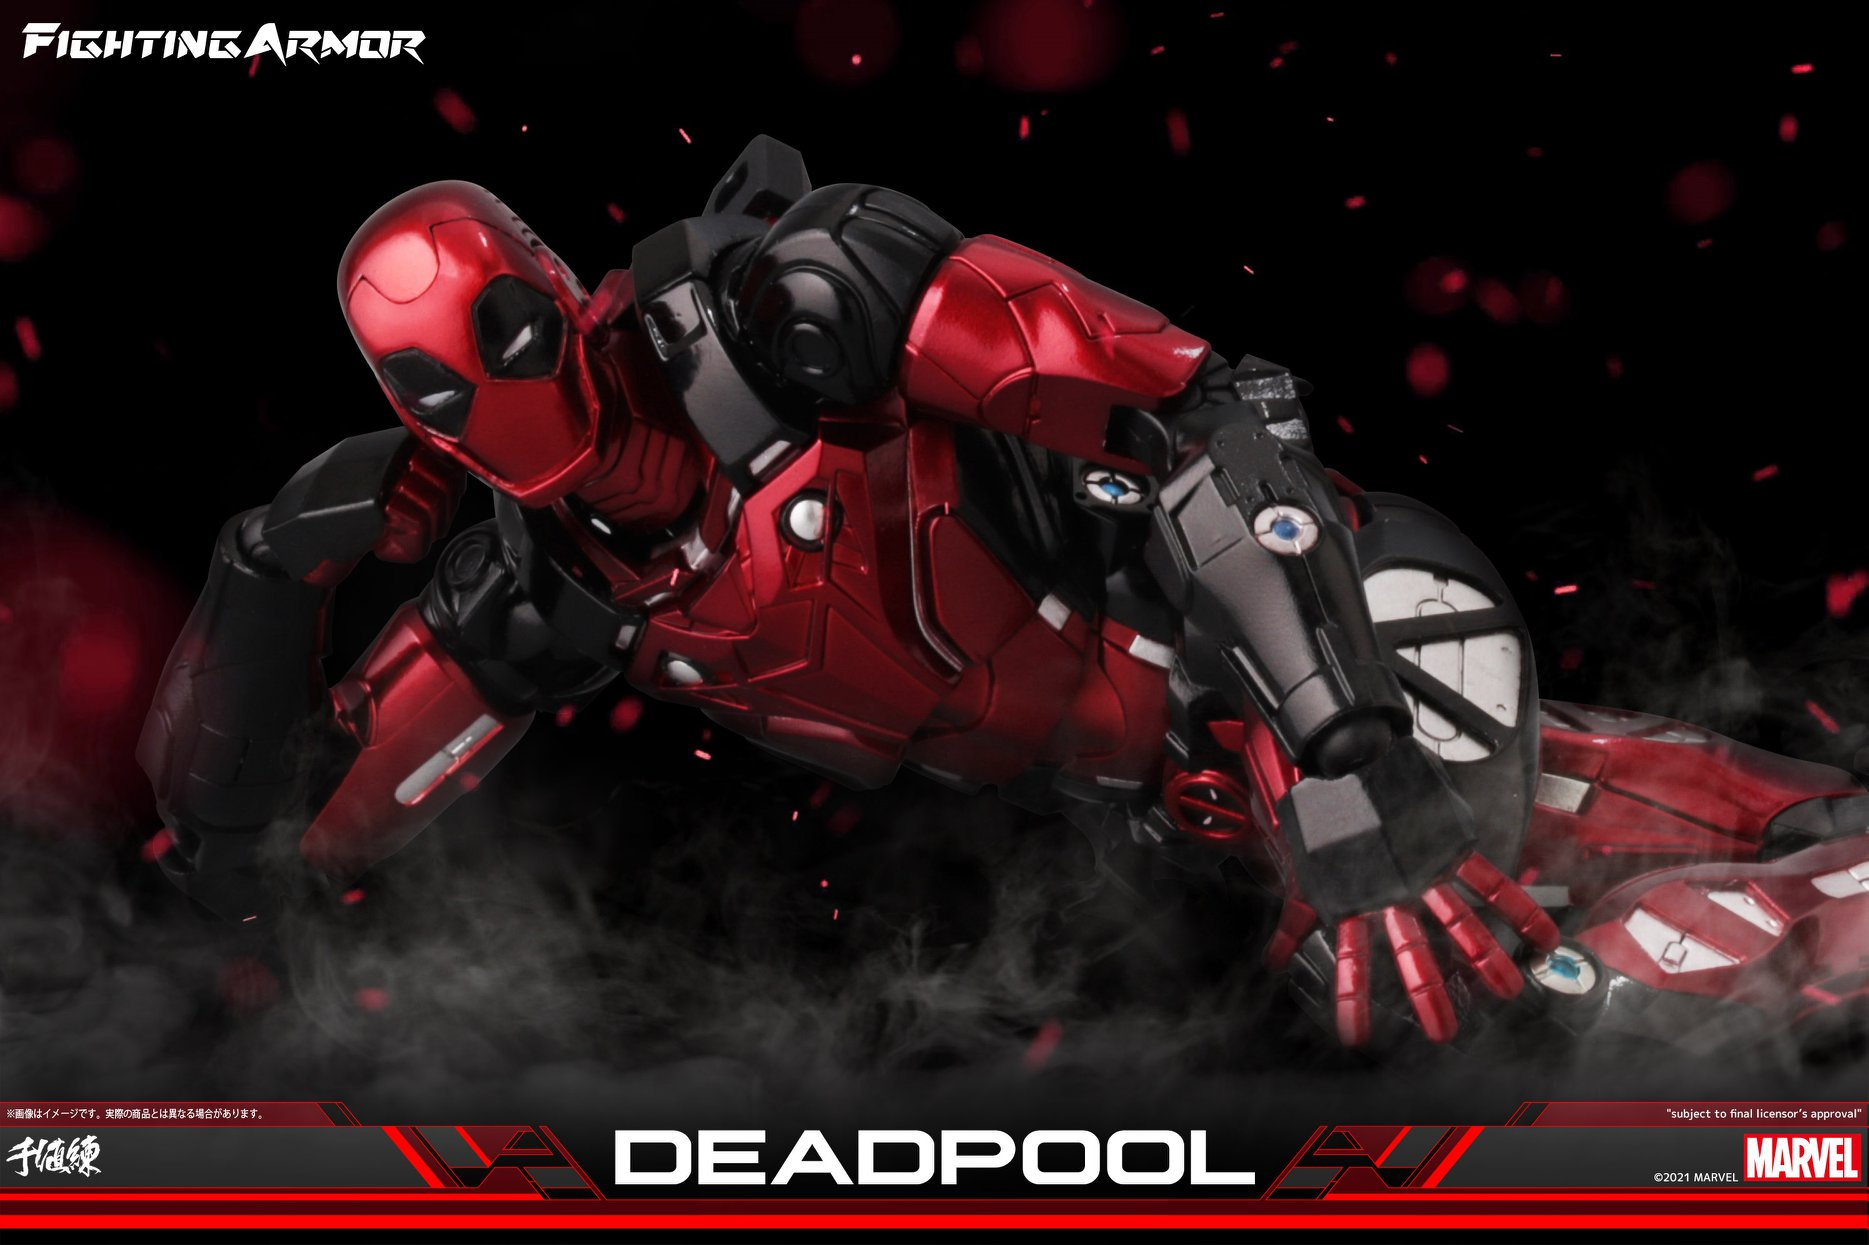 Fighting Armor Deadpool Preview